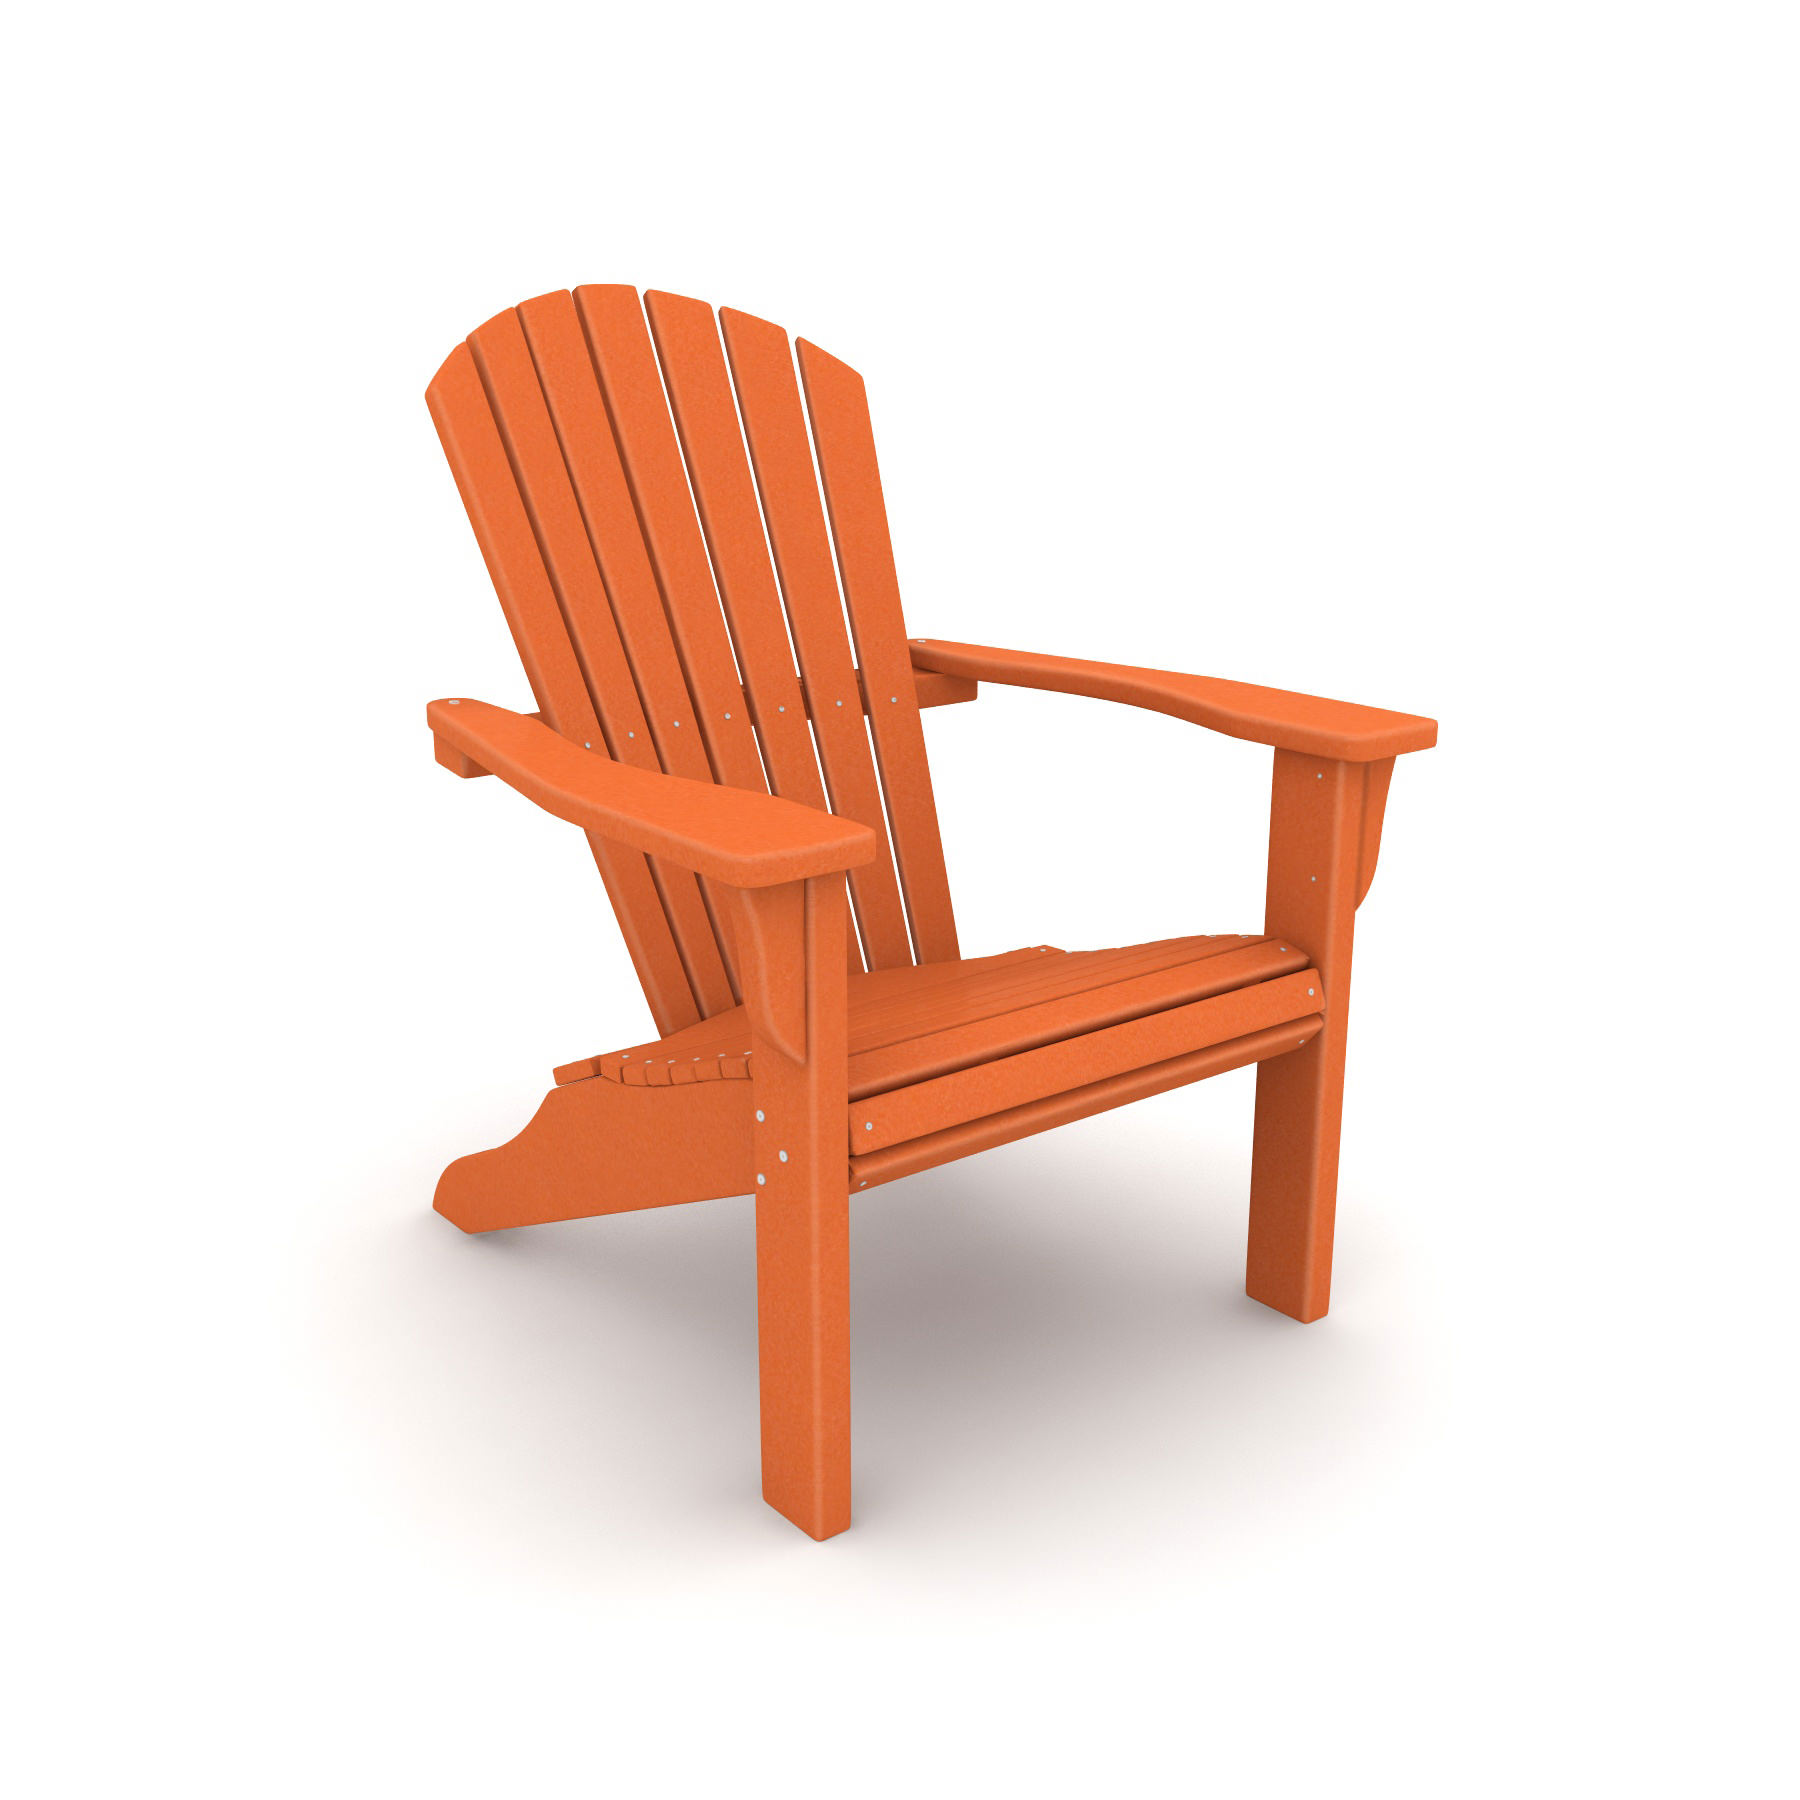 Buy Loggerhead Original Adirondack Chair Premium Poly Patios